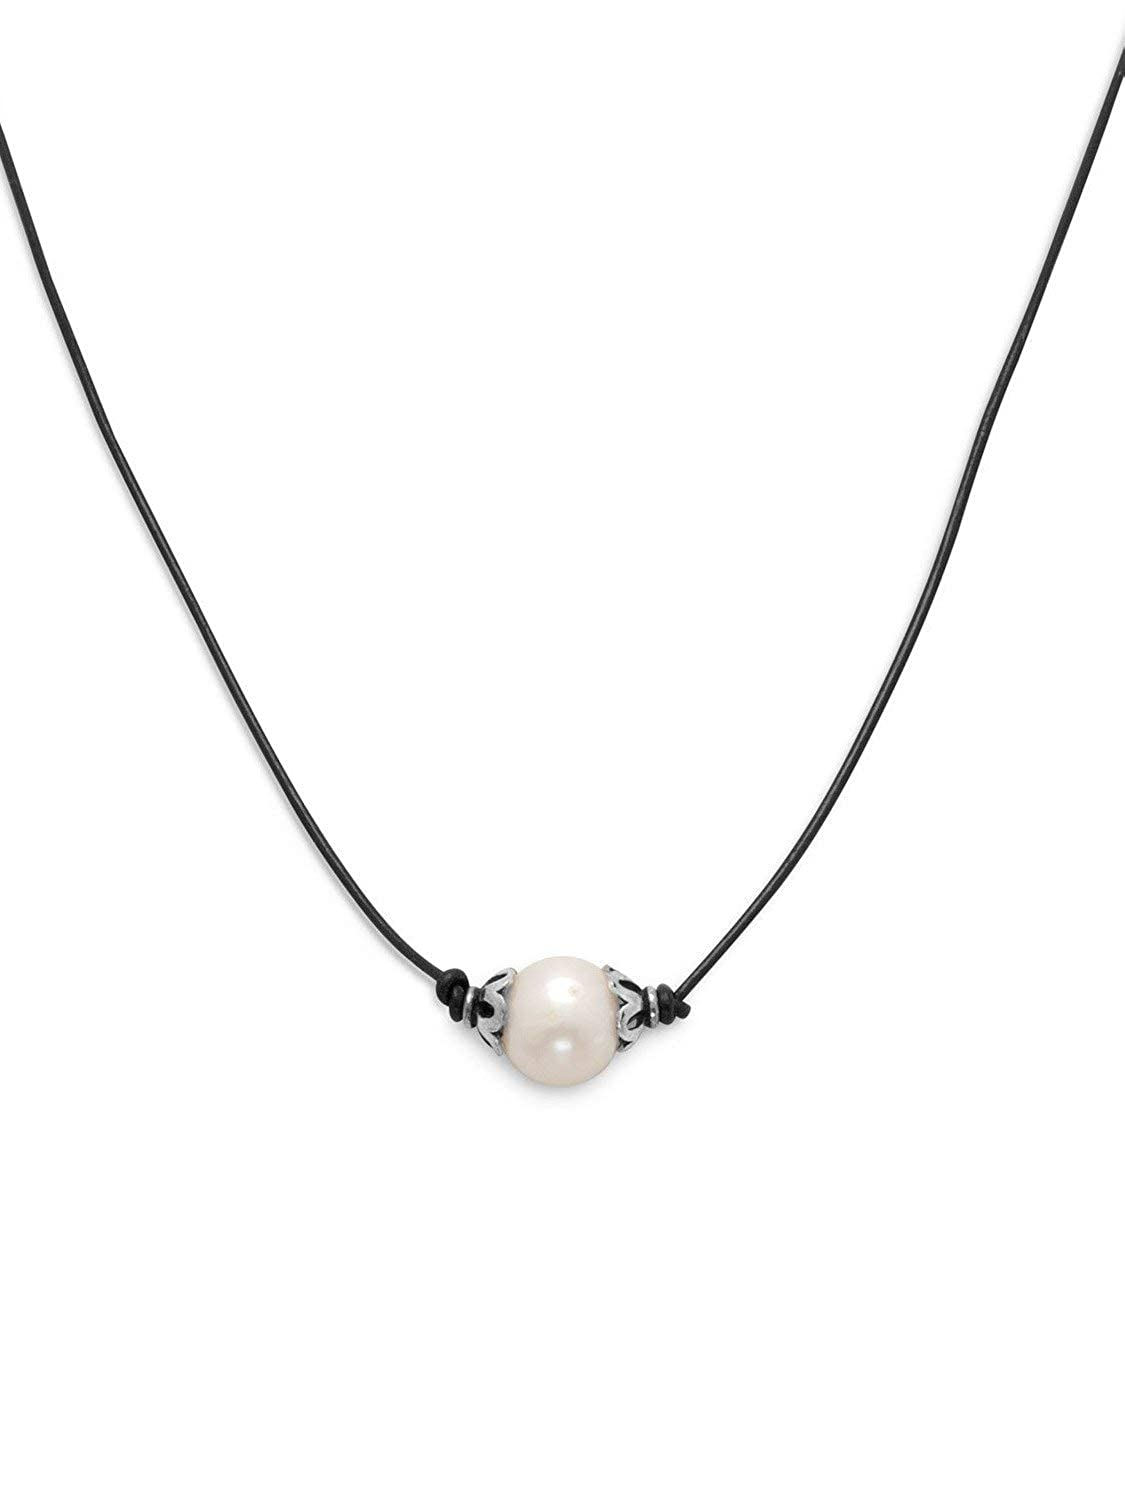 Single White Cultured Freshwater Pearl on Black Leather Cord Necklace Sterling Silver